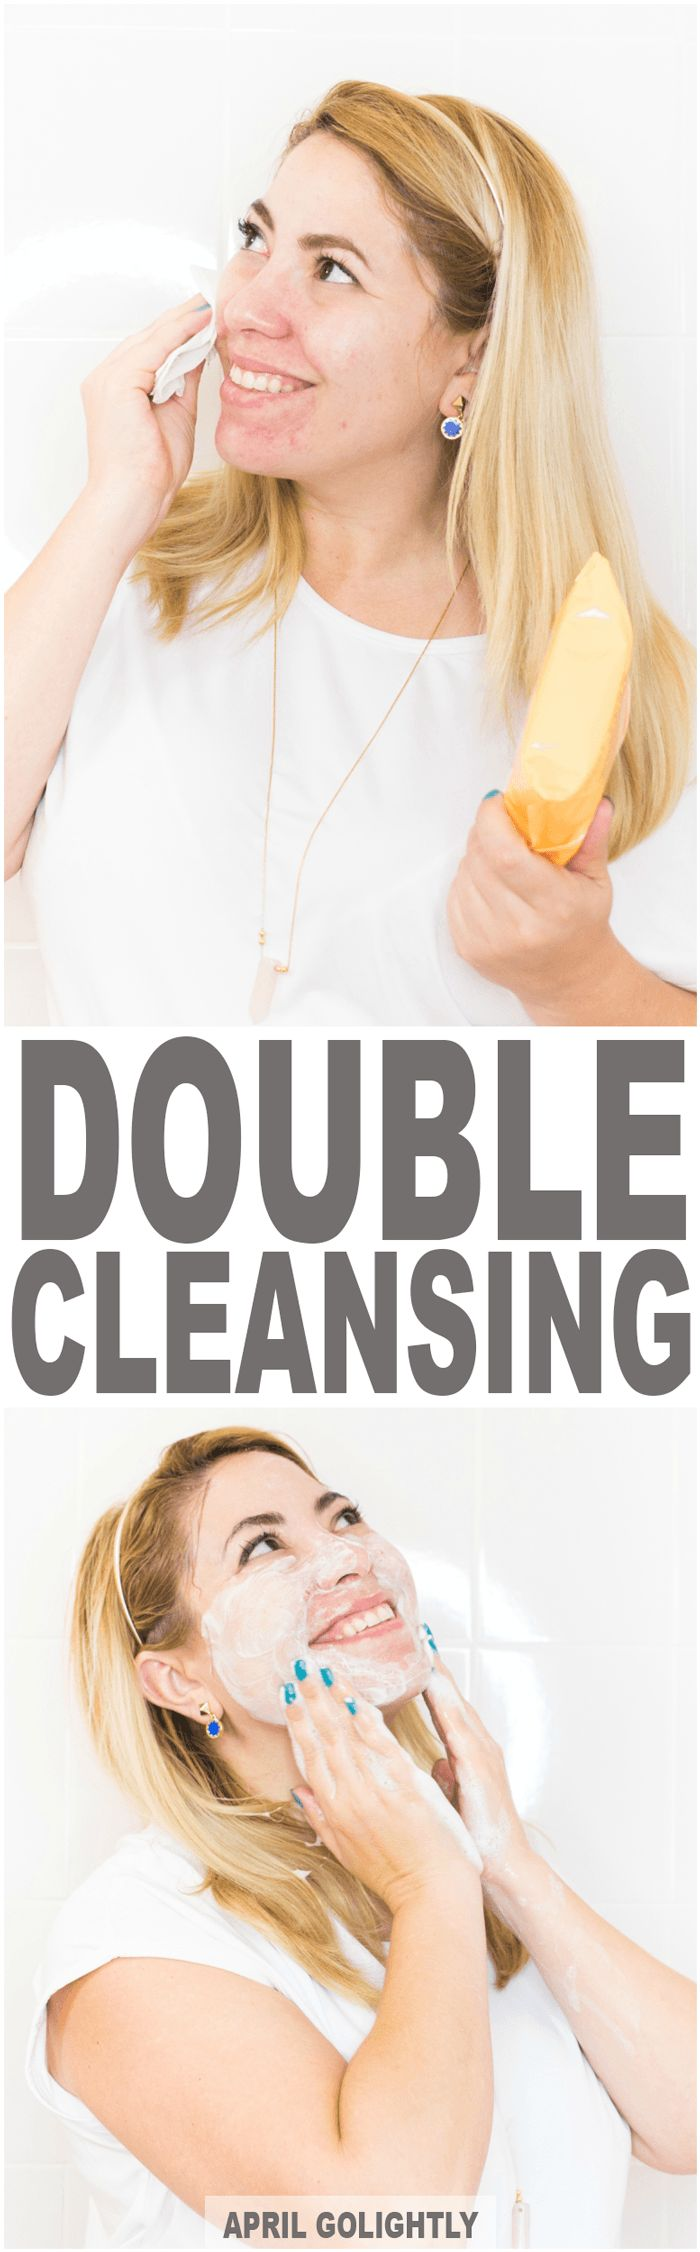 Double Cleanse Skin Care with makeup removing wipes and